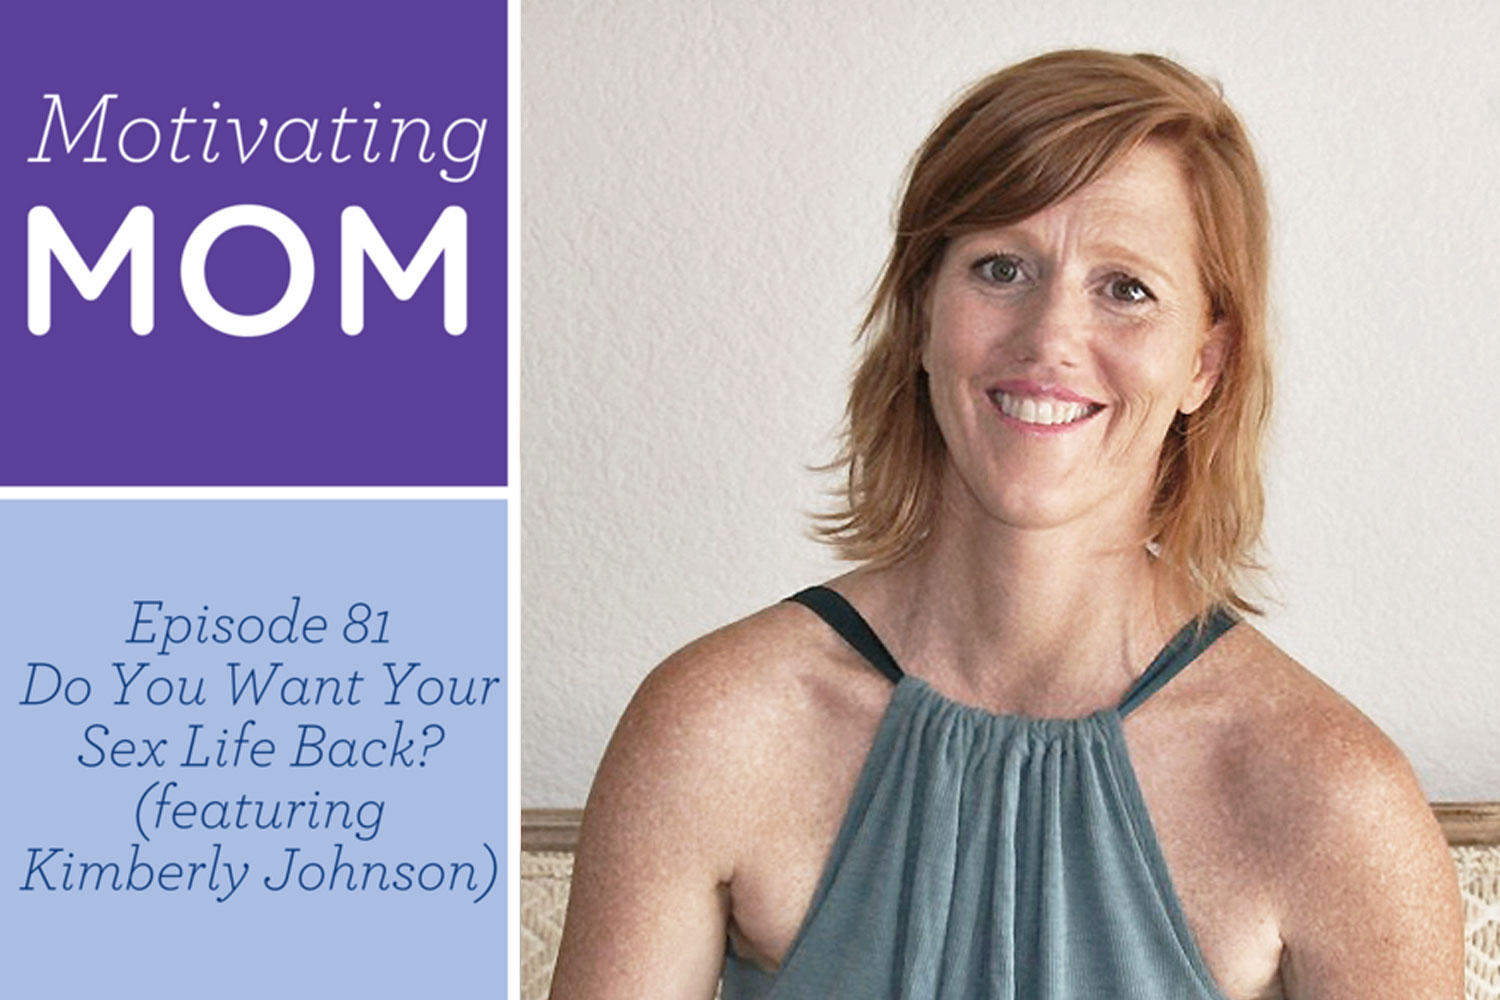 MOTIVATING MOM - Do You Want Your Sex Life Back?